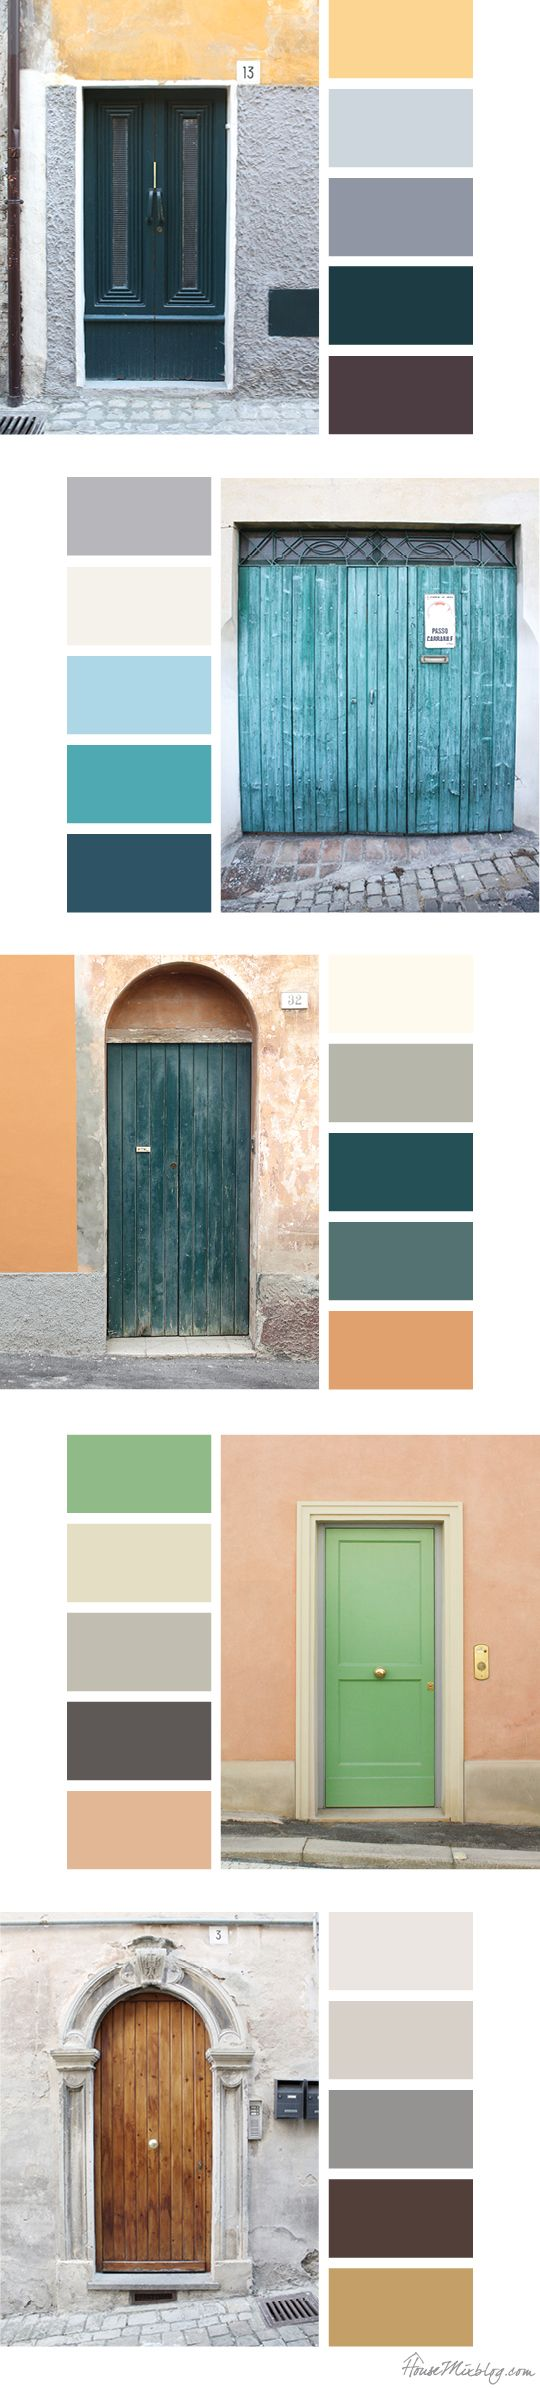 Italian door color palette inspiration